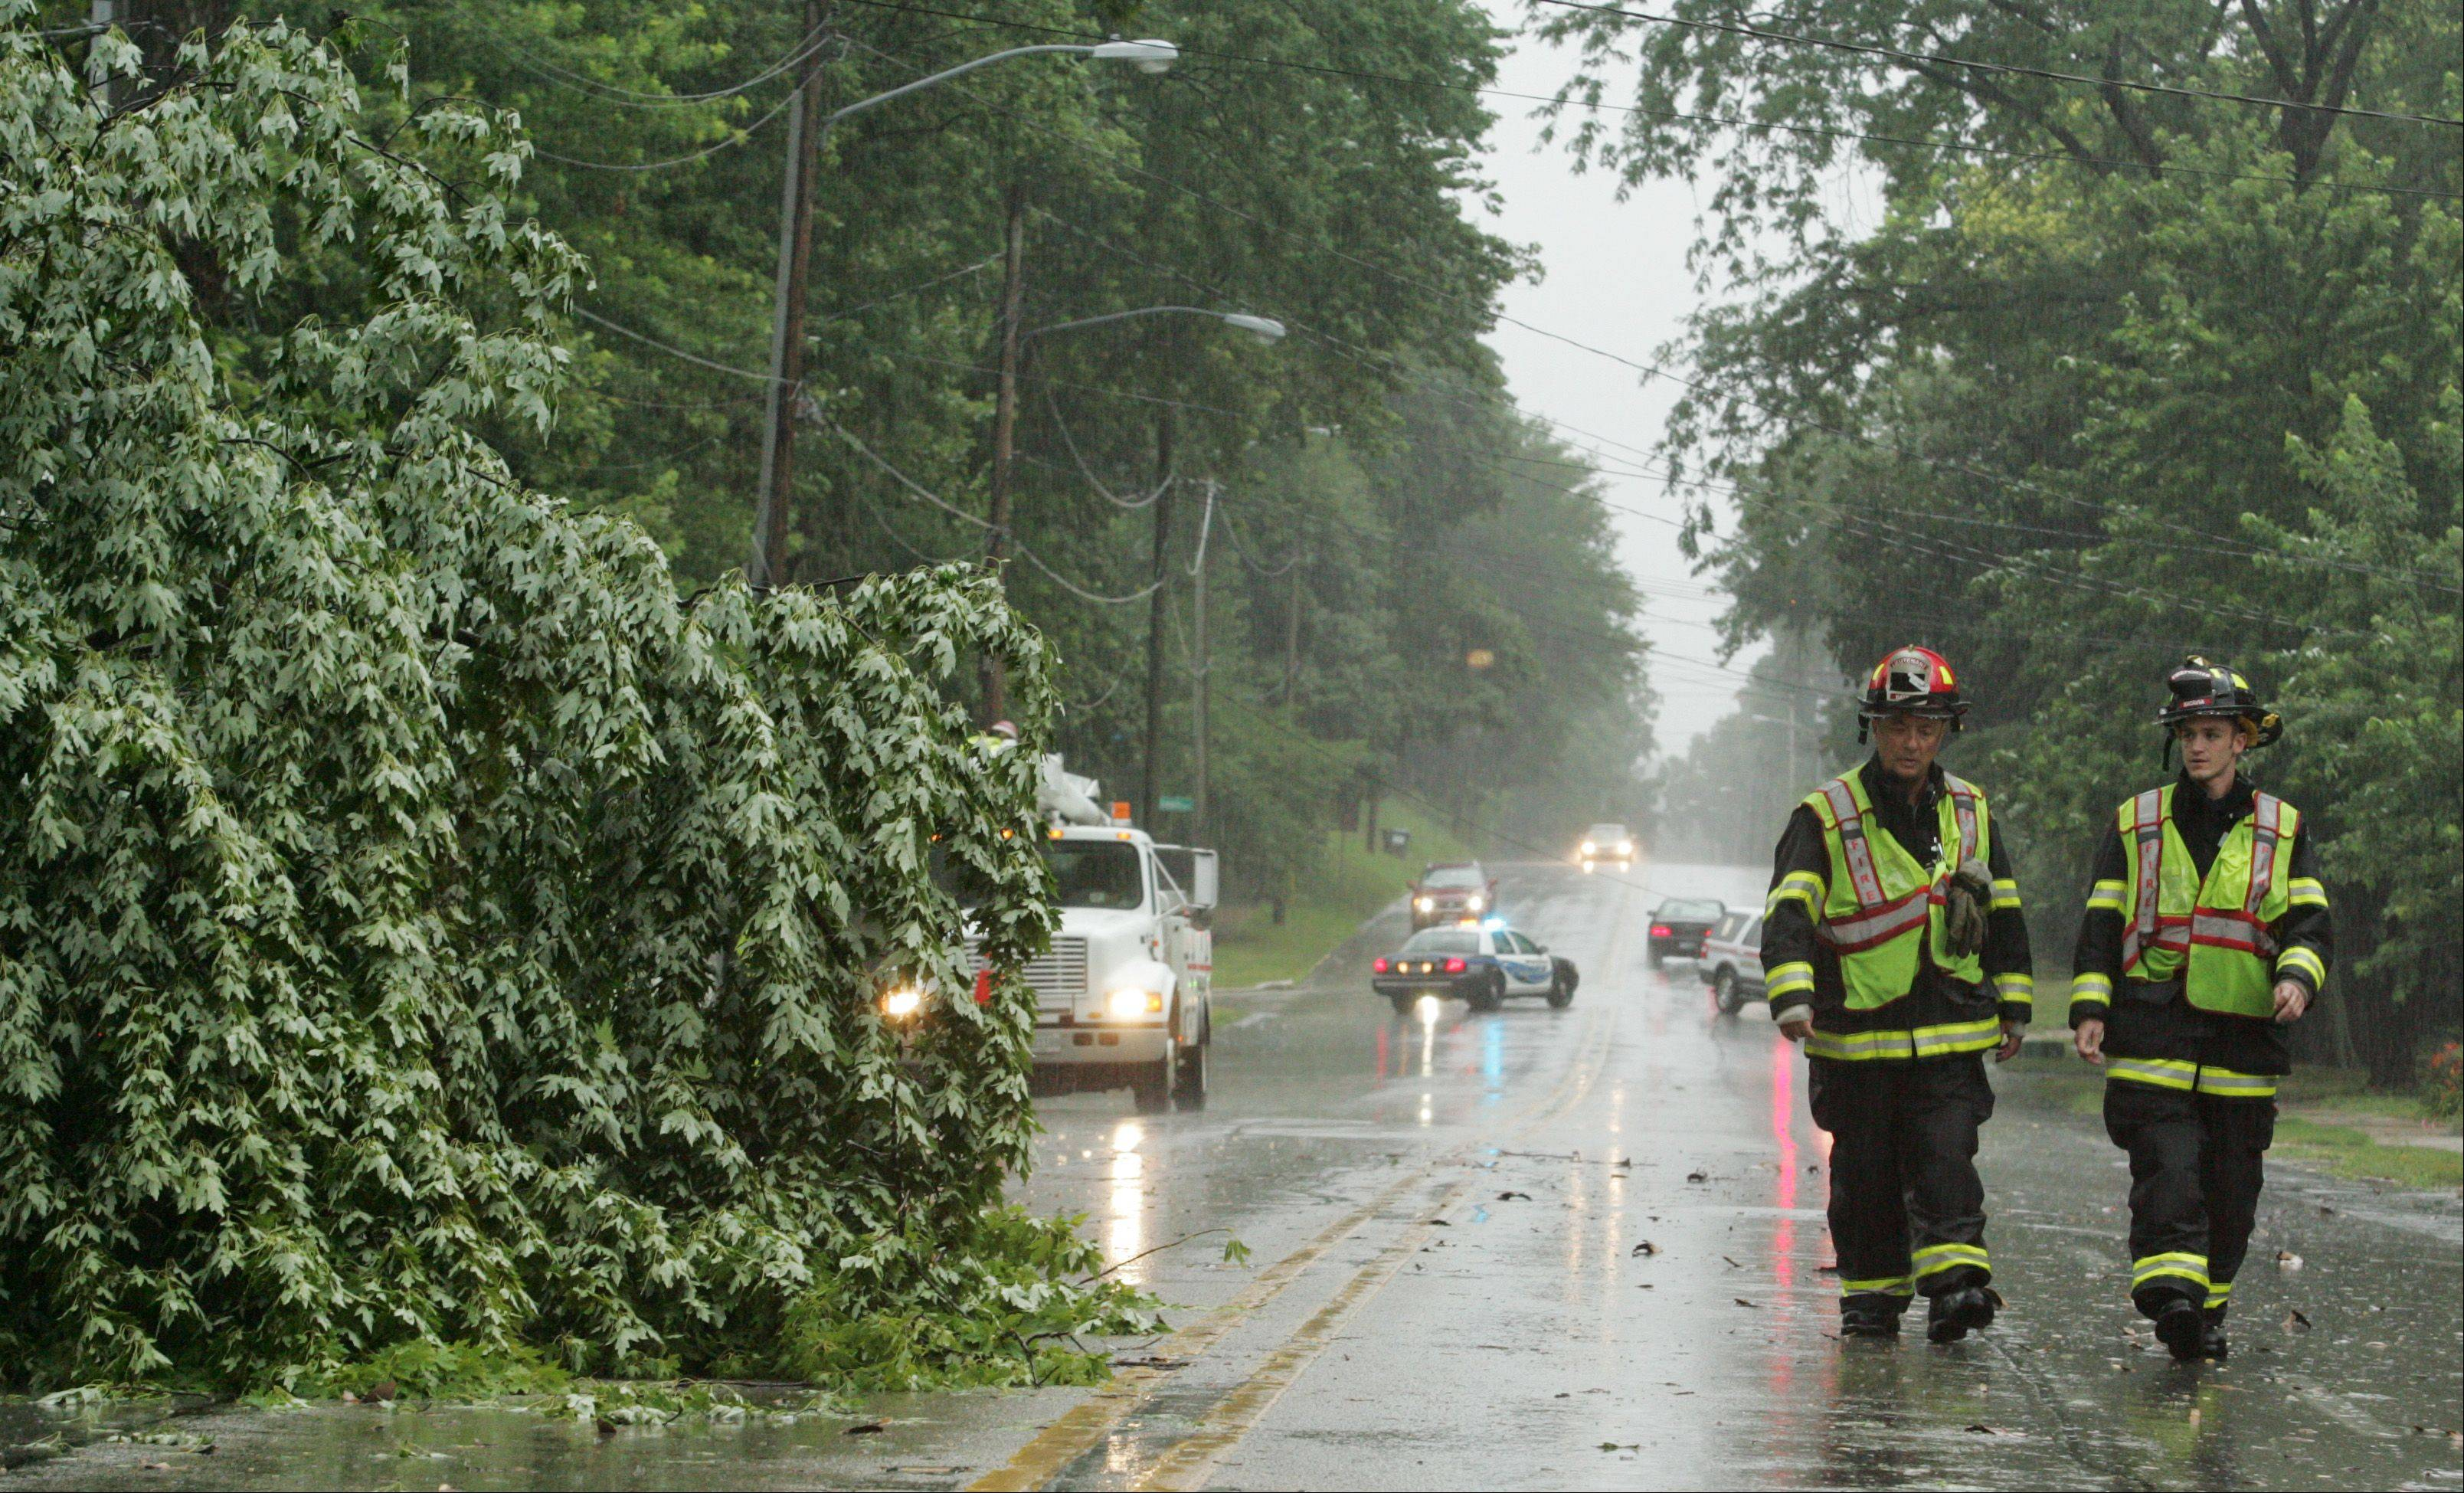 Christopher Hankins/chankins@dailyherald.com Batavia firefighters Lt. Jamie White, left and Chris LaFleur survey the scene where a large tree came down in Friday morning's storm, shutting down traffic along Rt. 31 near McKee Street. Crews hoped to have at least the northbound lanes reopened later this morning.